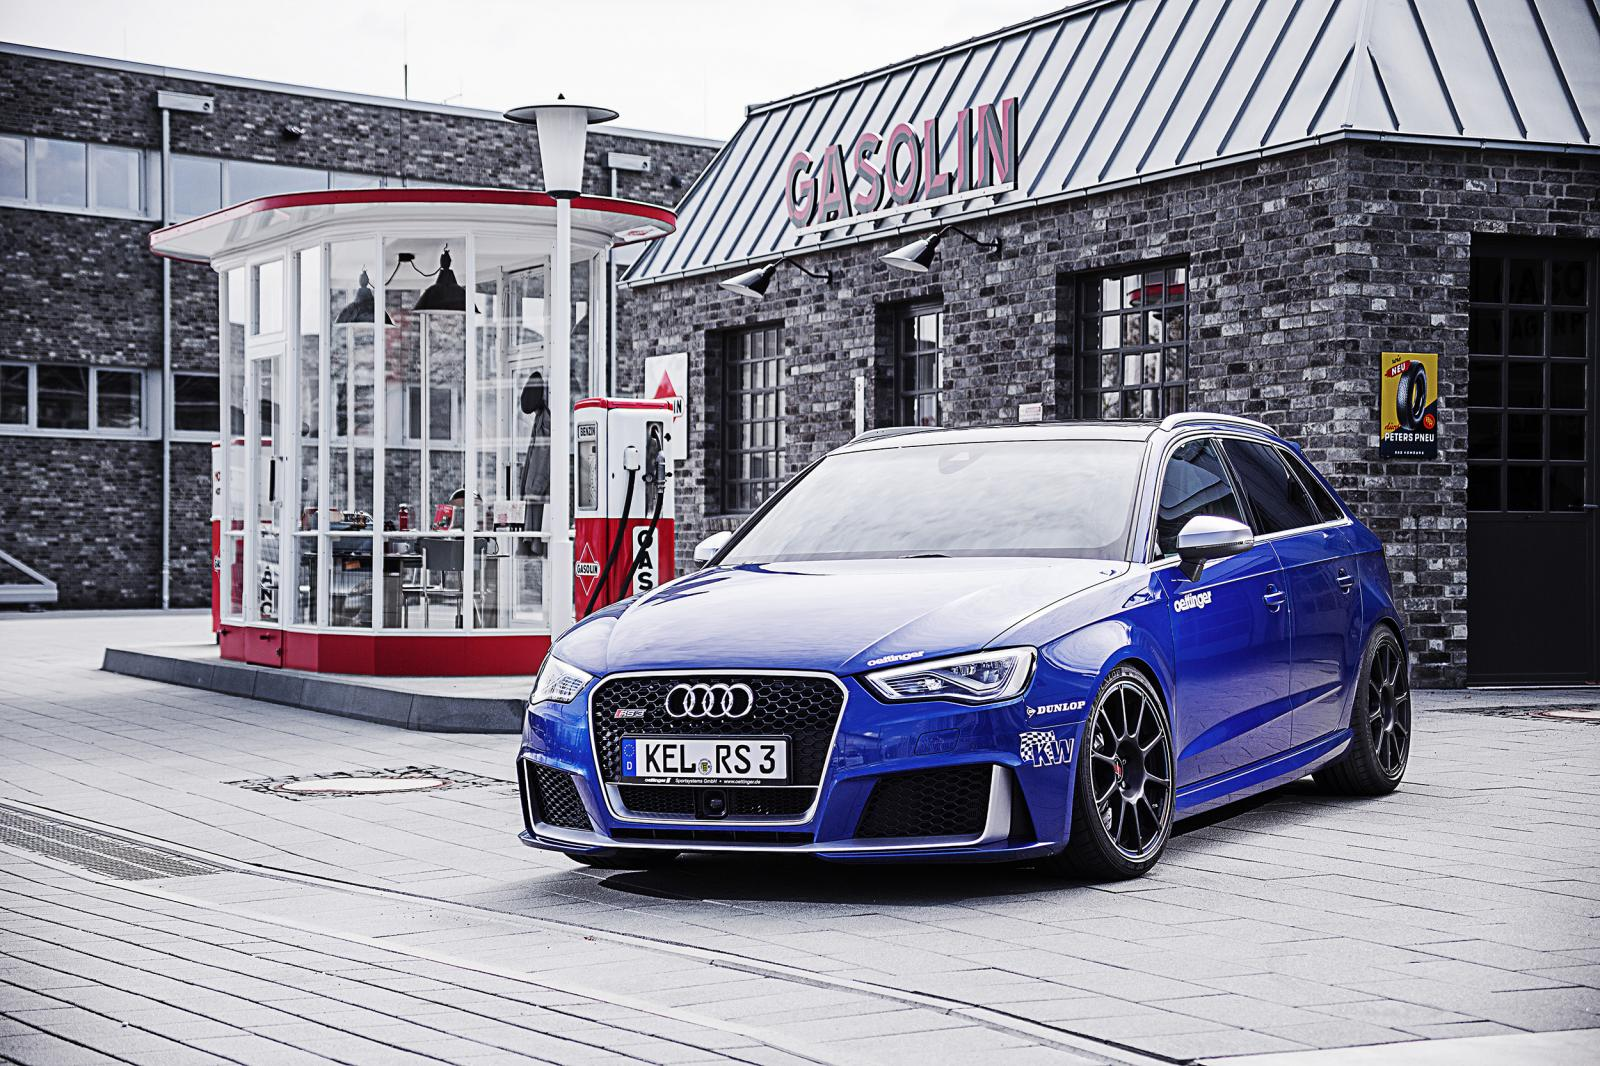 520 hp audi rs3 by oettinger proves it can hit 100 km h in. Black Bedroom Furniture Sets. Home Design Ideas